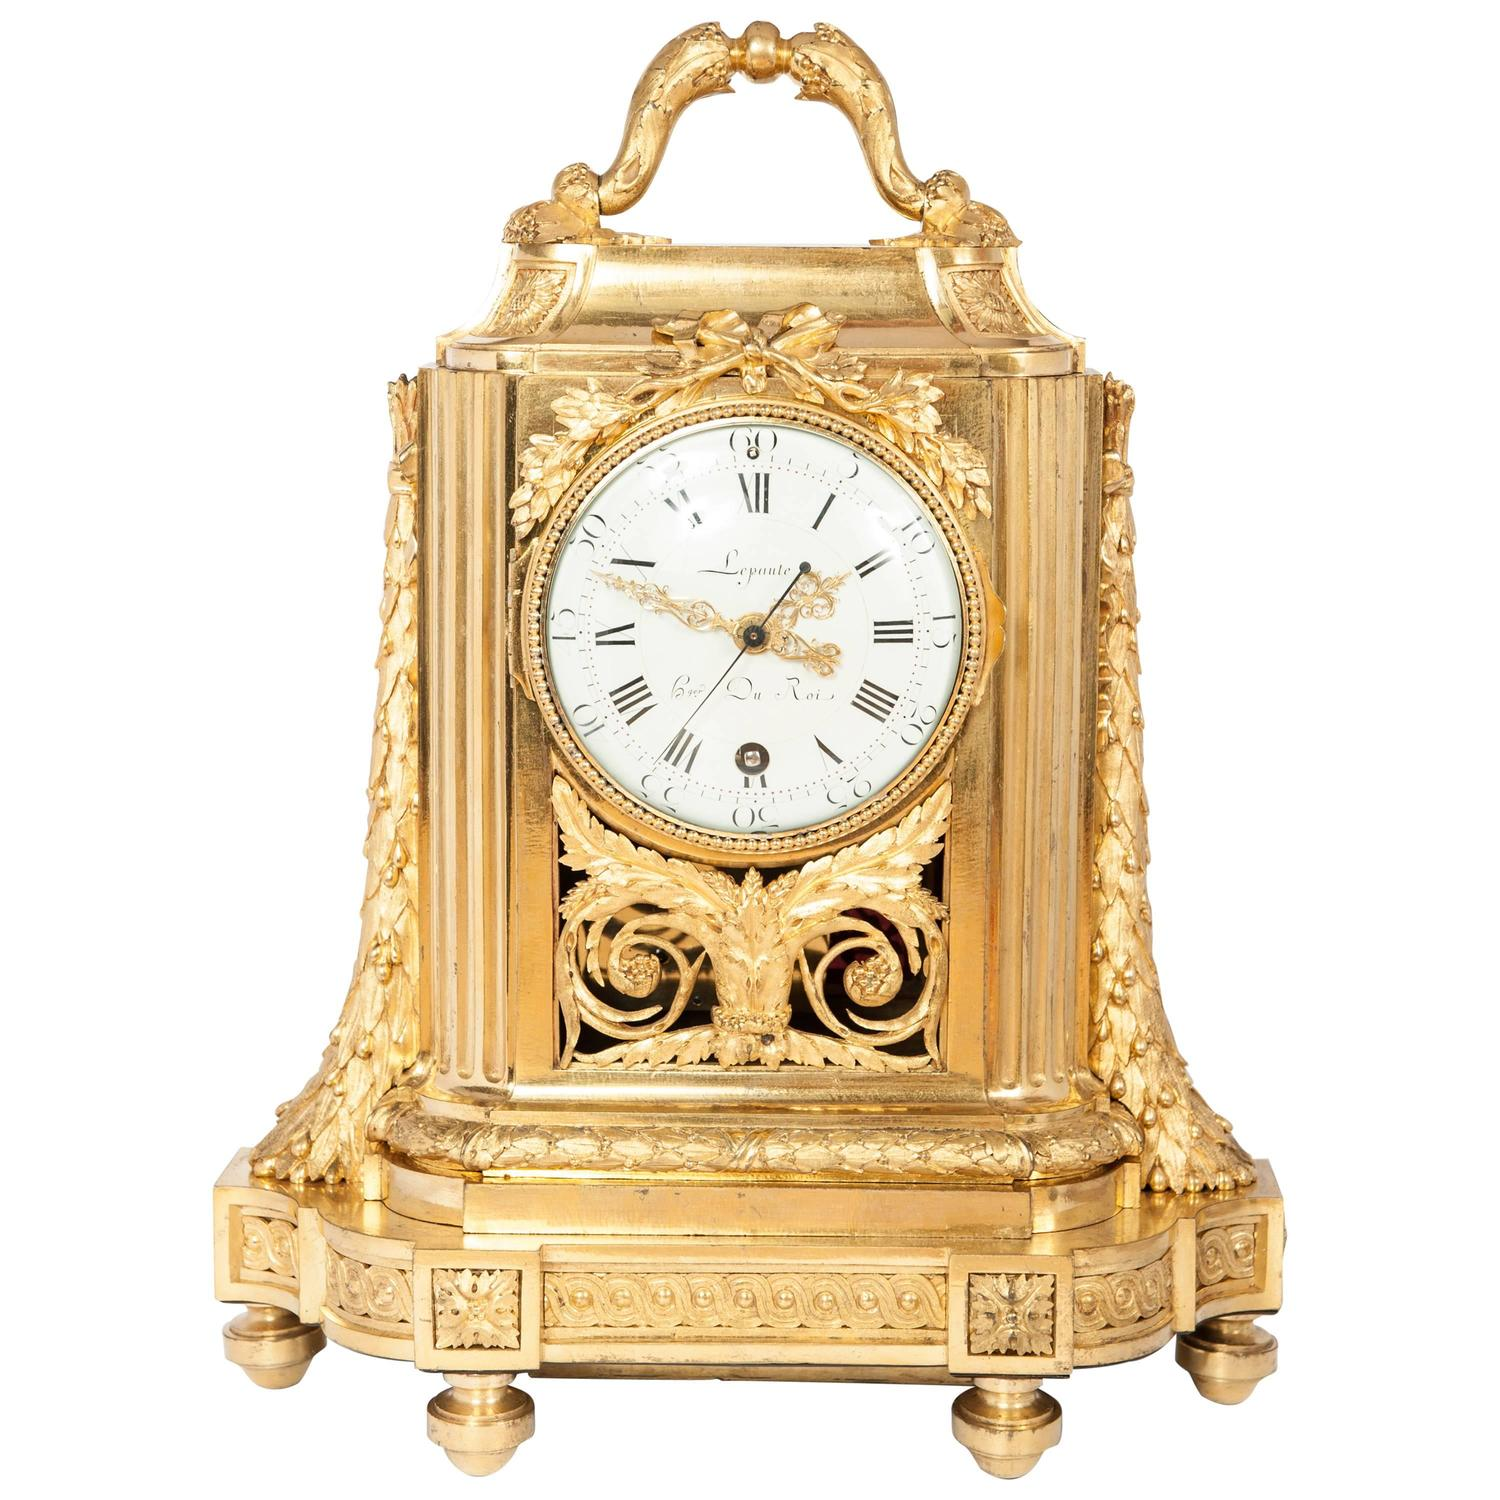 Very unusual high quality early louis xvi traveling clock Unique clocks for sale